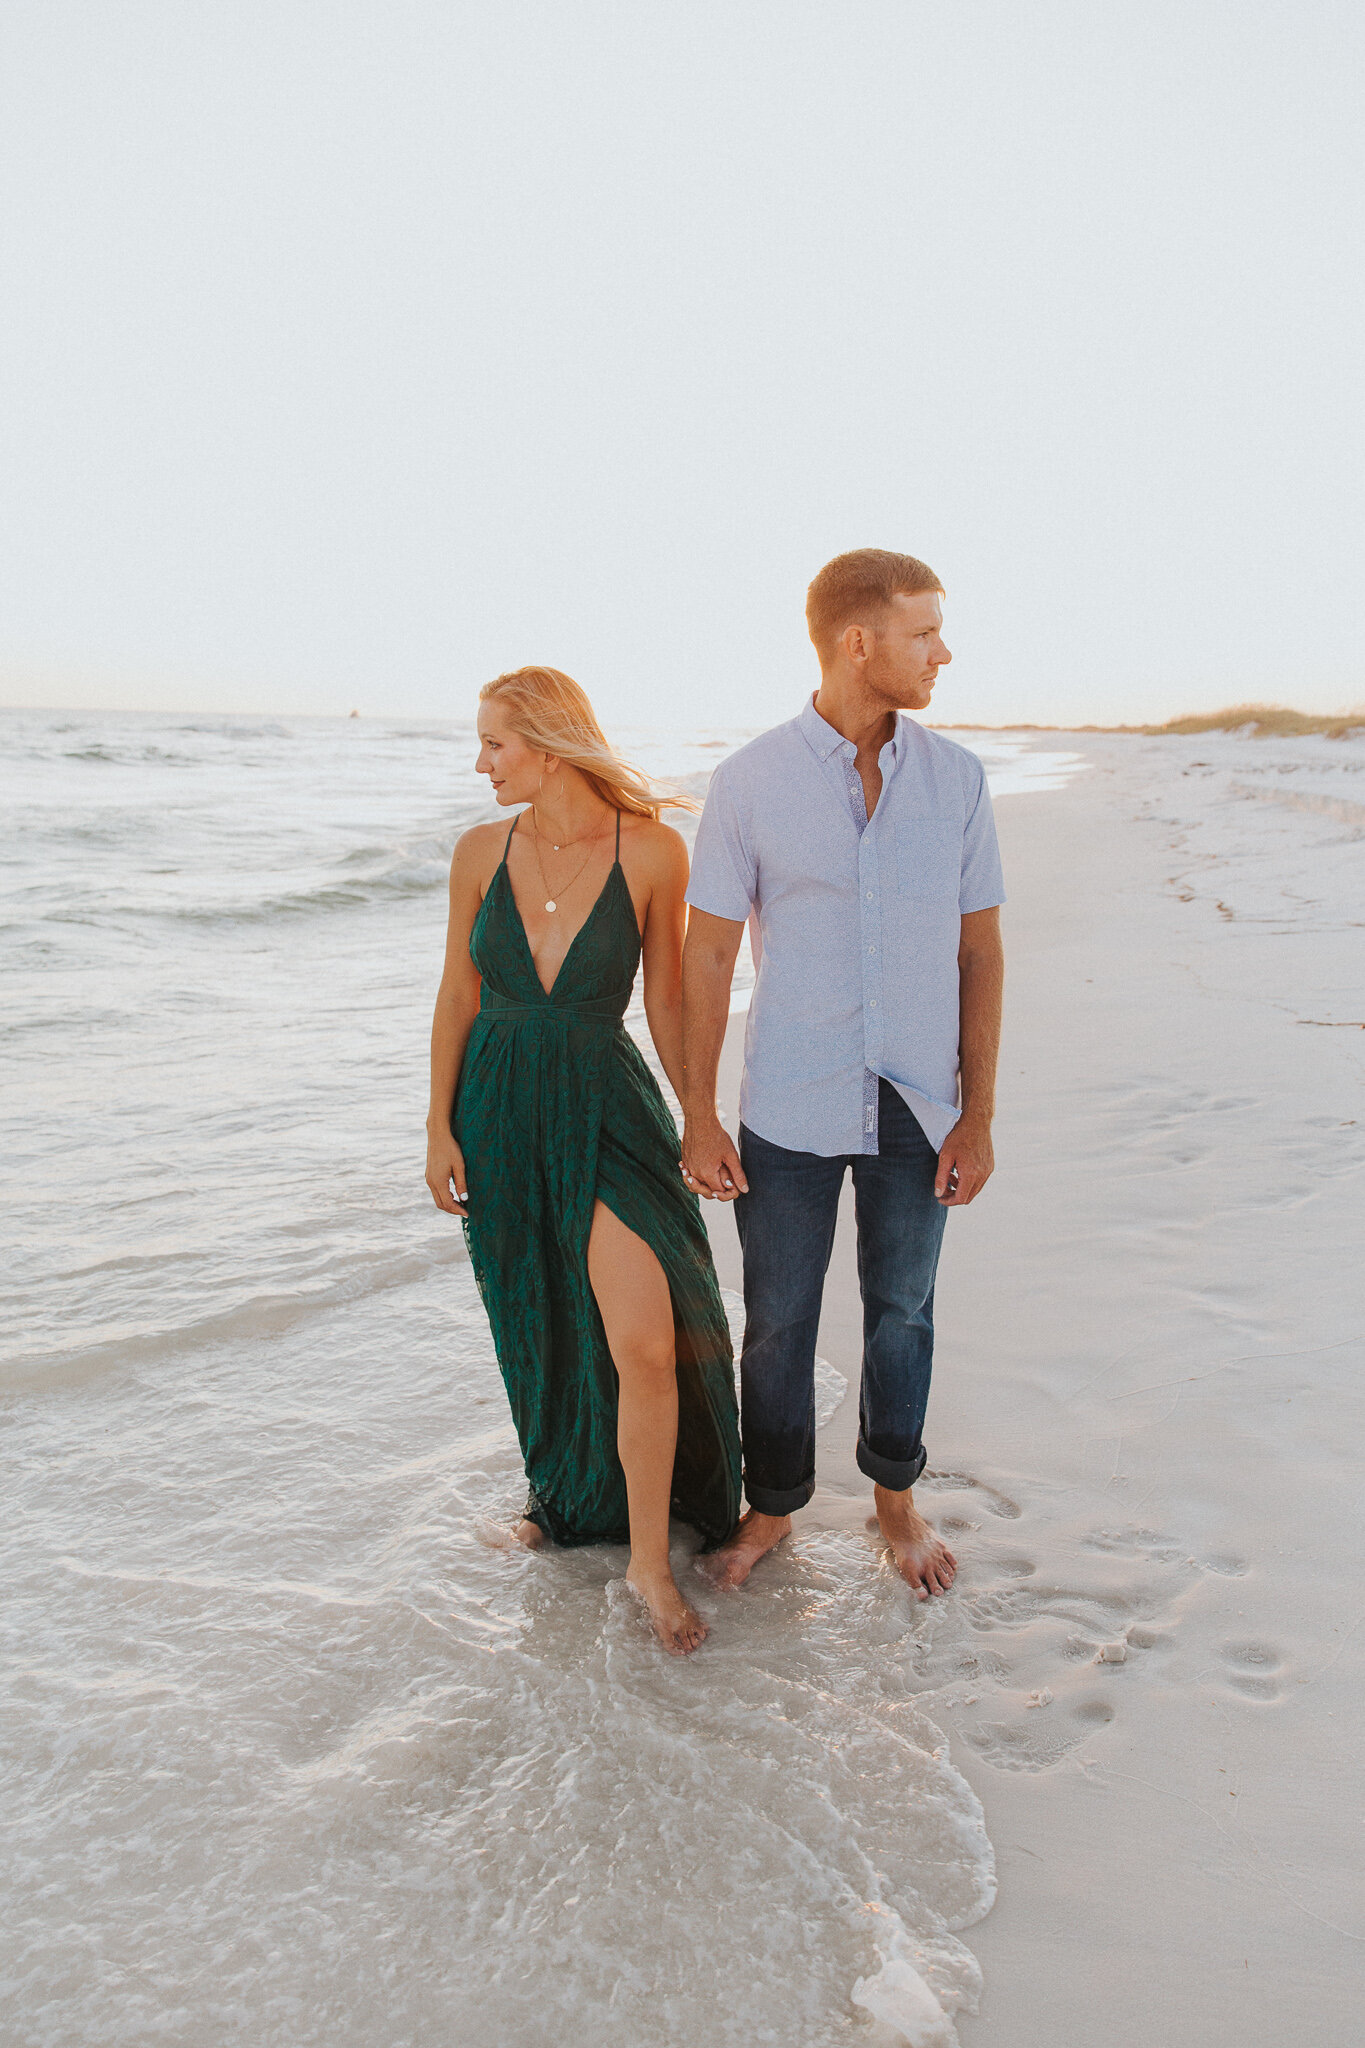 Destin Beach Sunset Engagement Session // Destin Photography by Bare Moments Photography